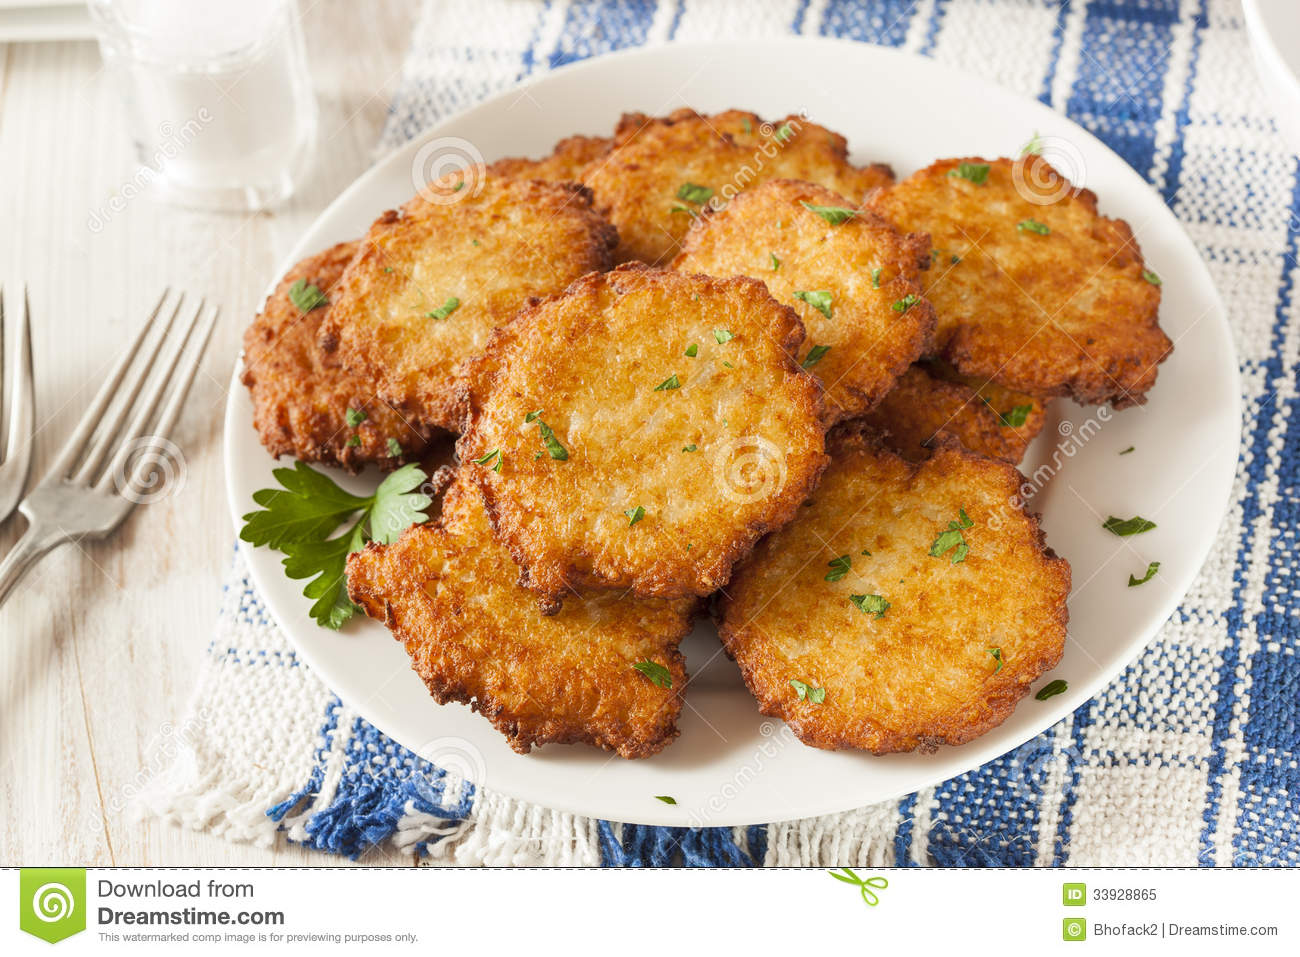 Homemade Traditional Potato Pancake Latke Royalty Free Stock Photo.